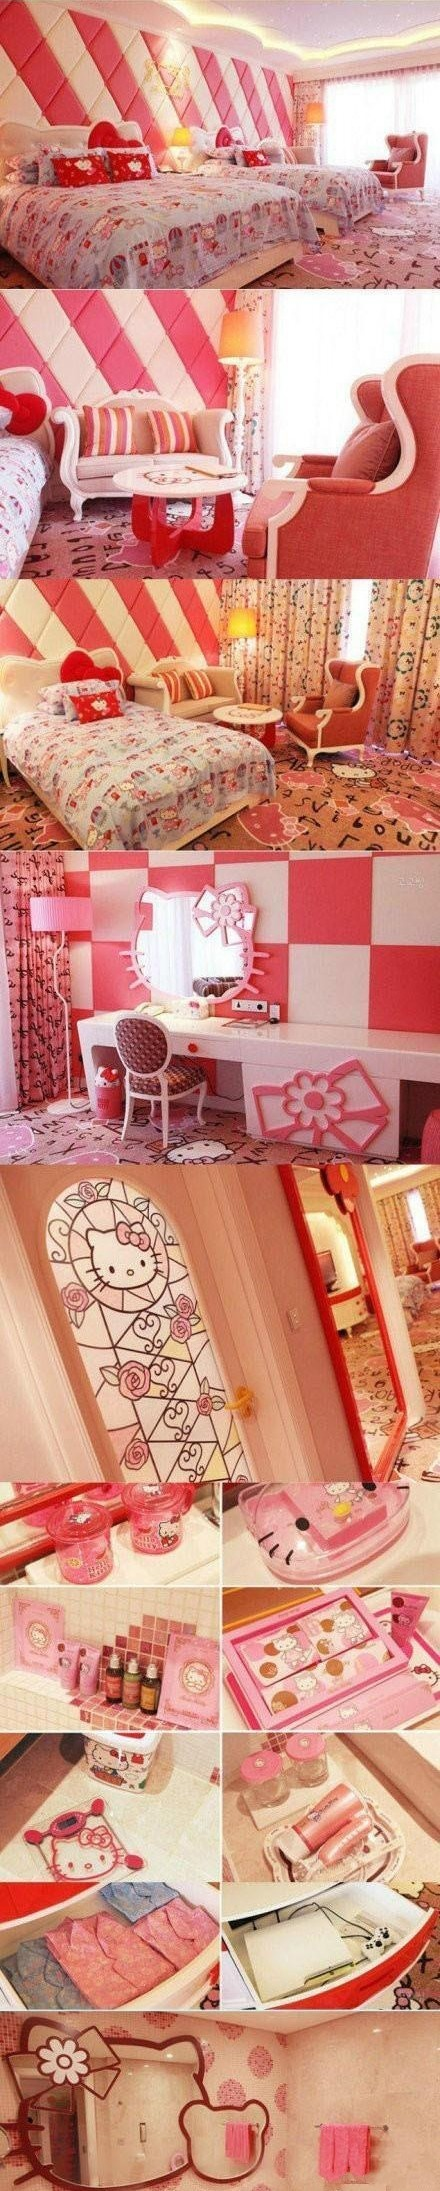 Hello Kitty Hotel in Osaka, Japan...I want to go there :D